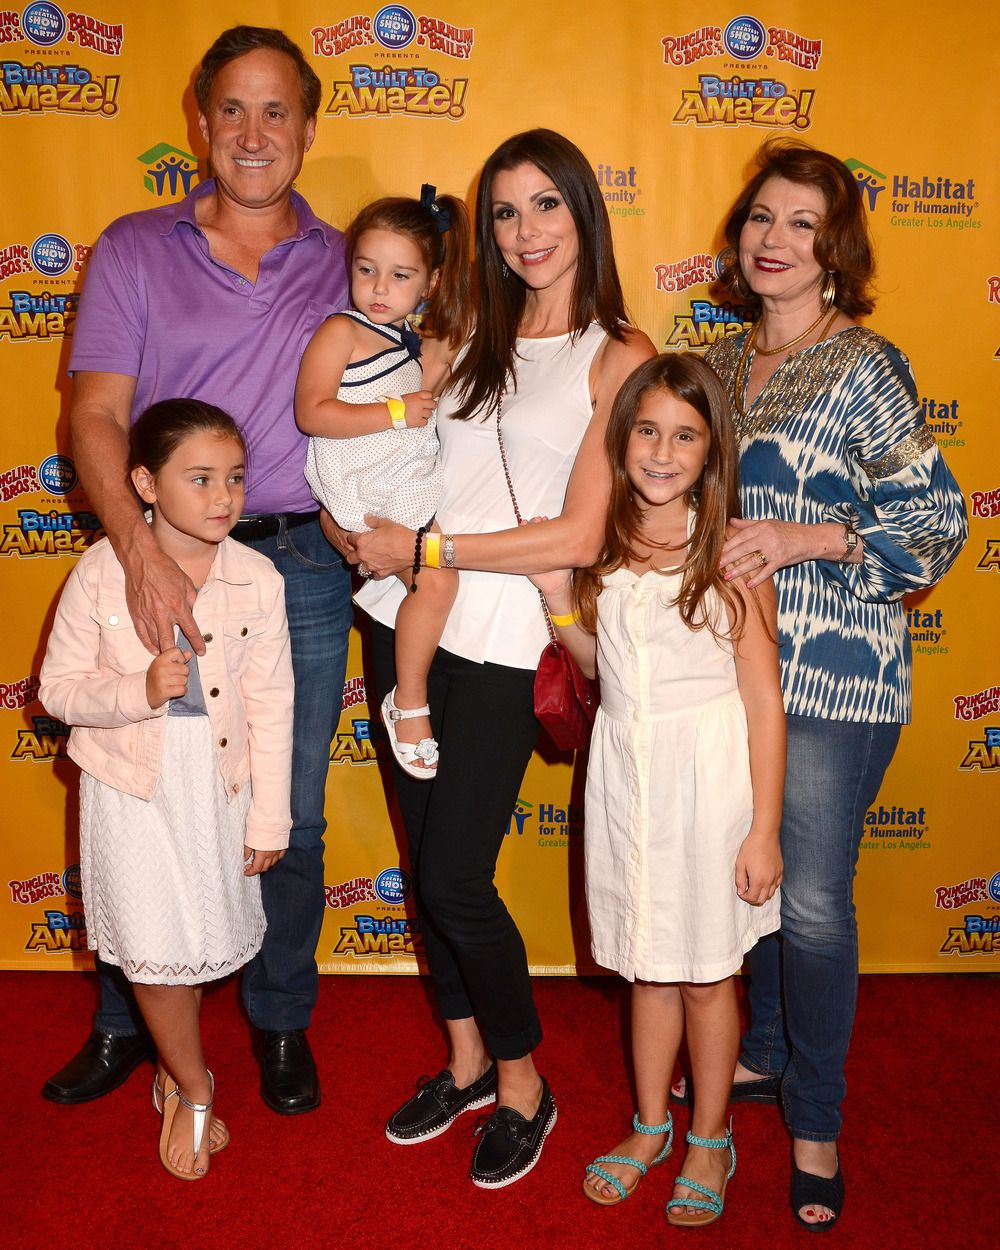 heather dubrow on her new house and seeing her marriage on tv